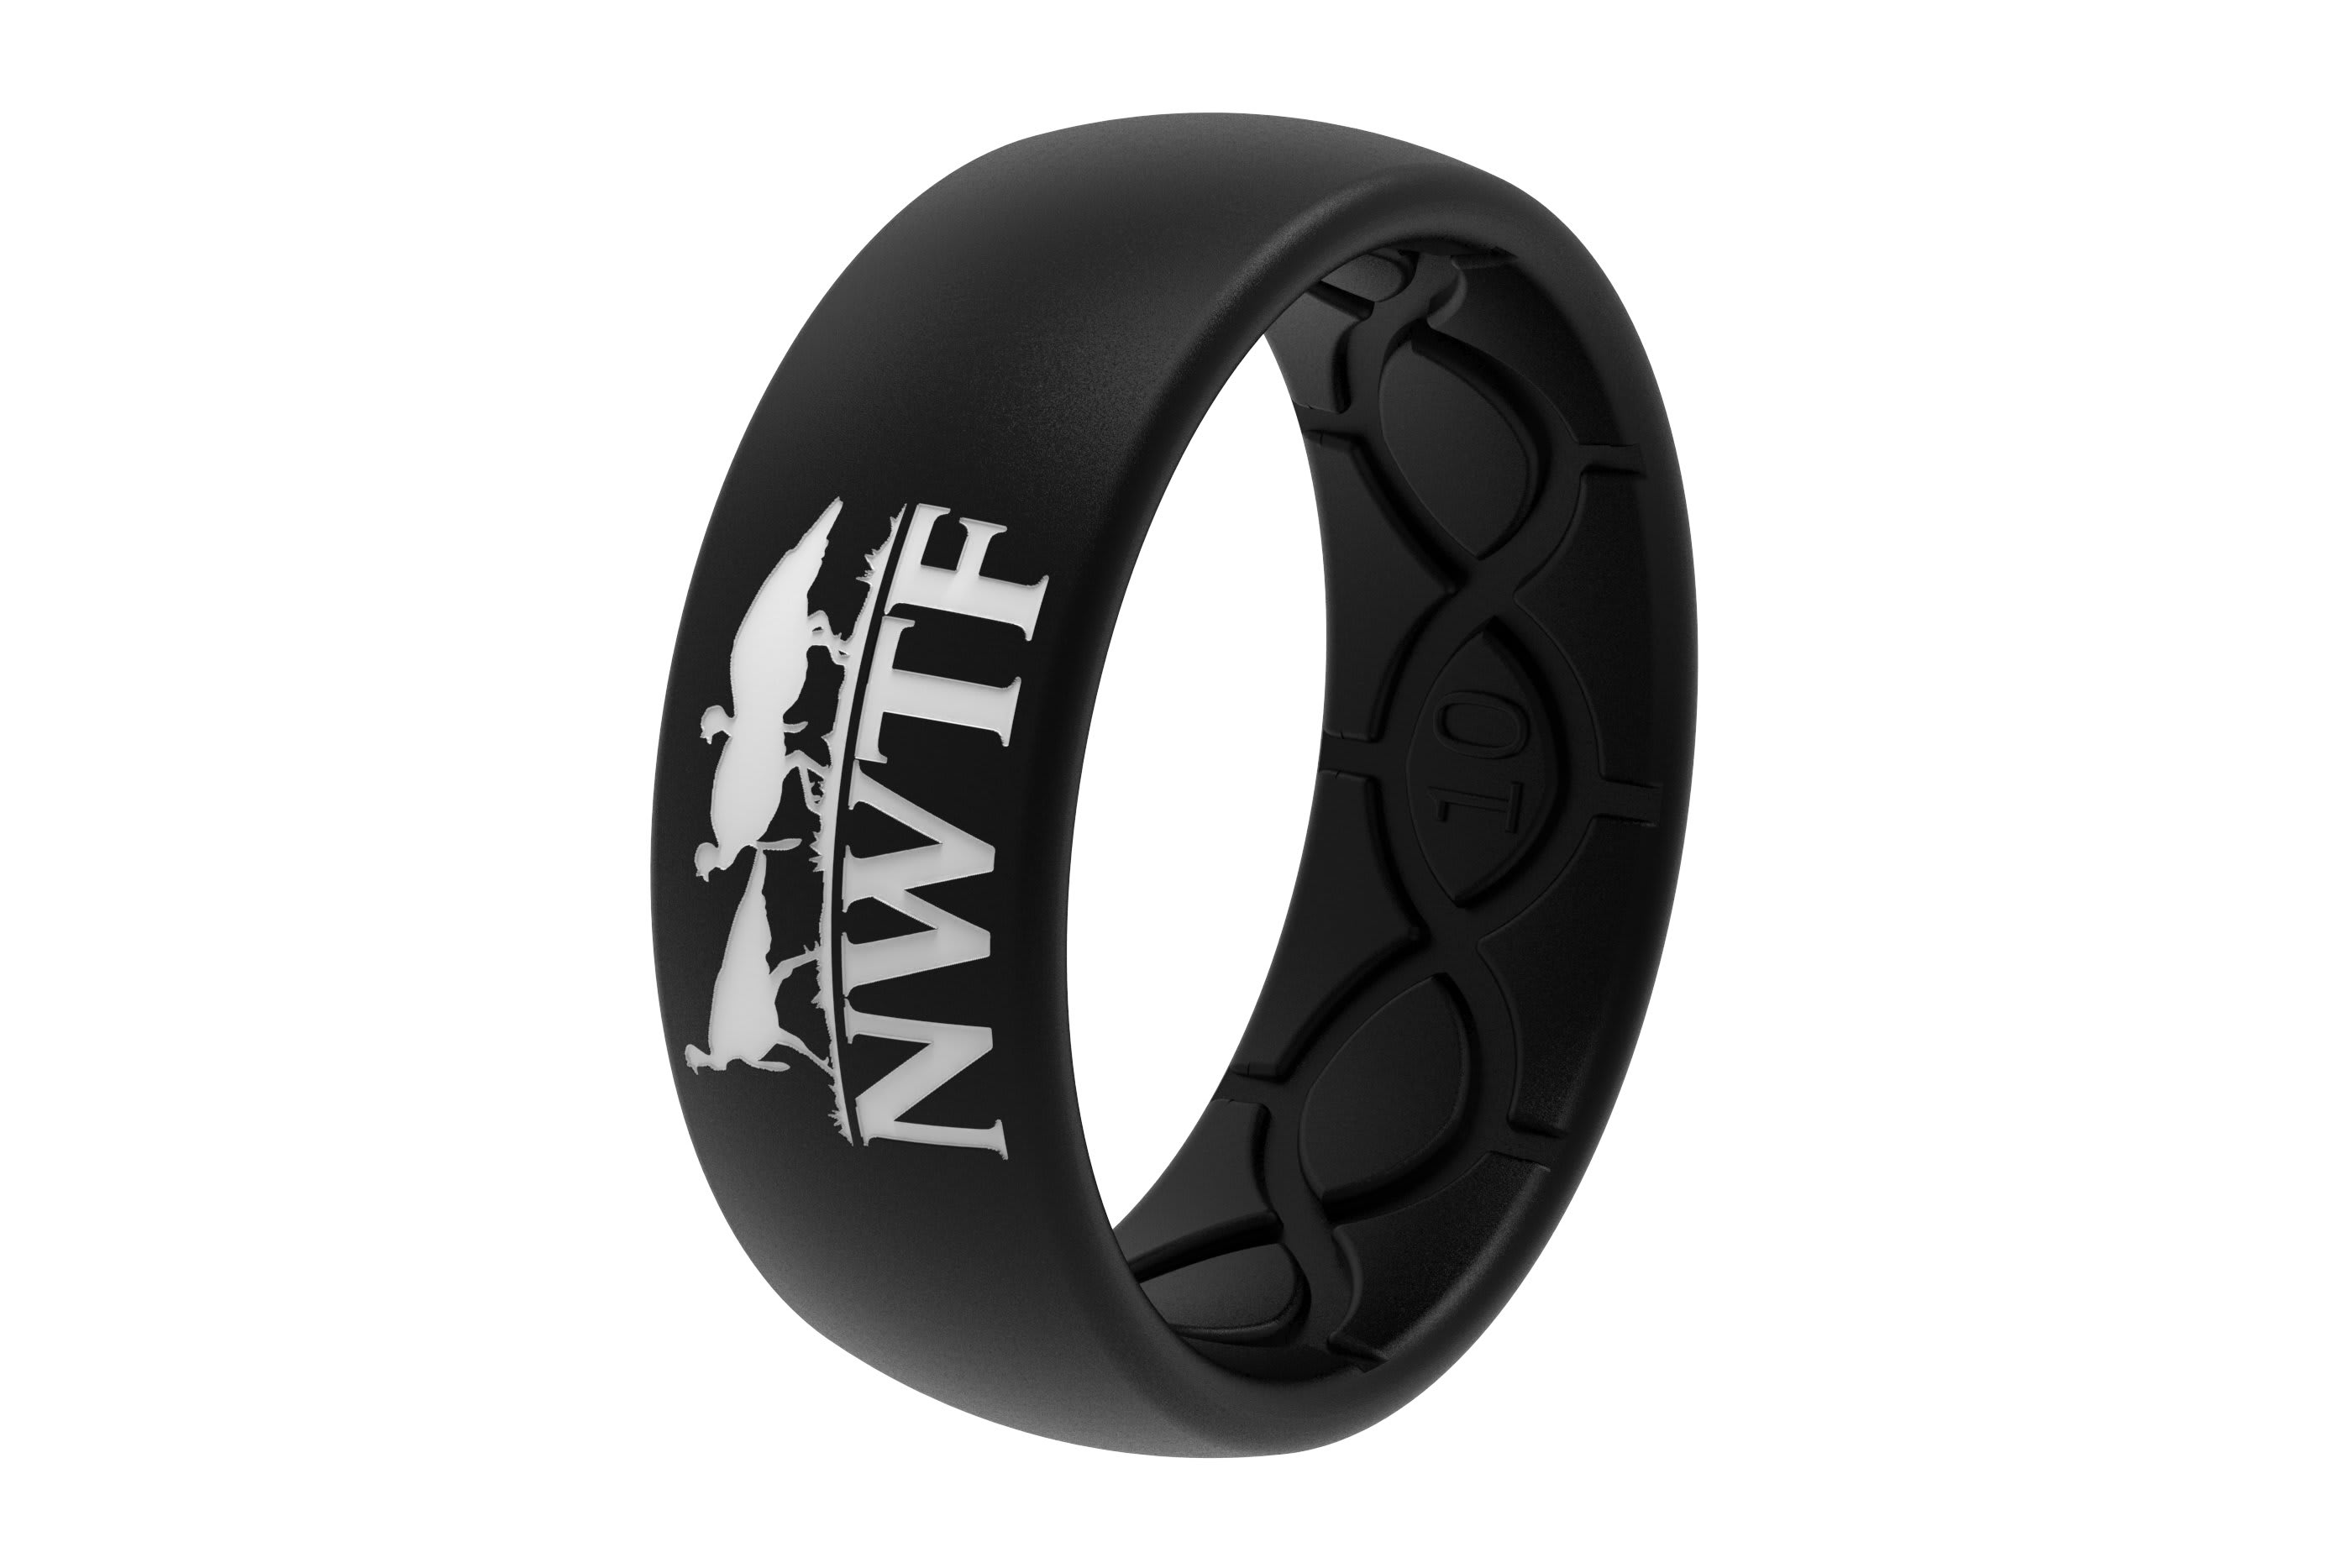 Original NWTF Black Logo  viewed on its side  viewed on its side